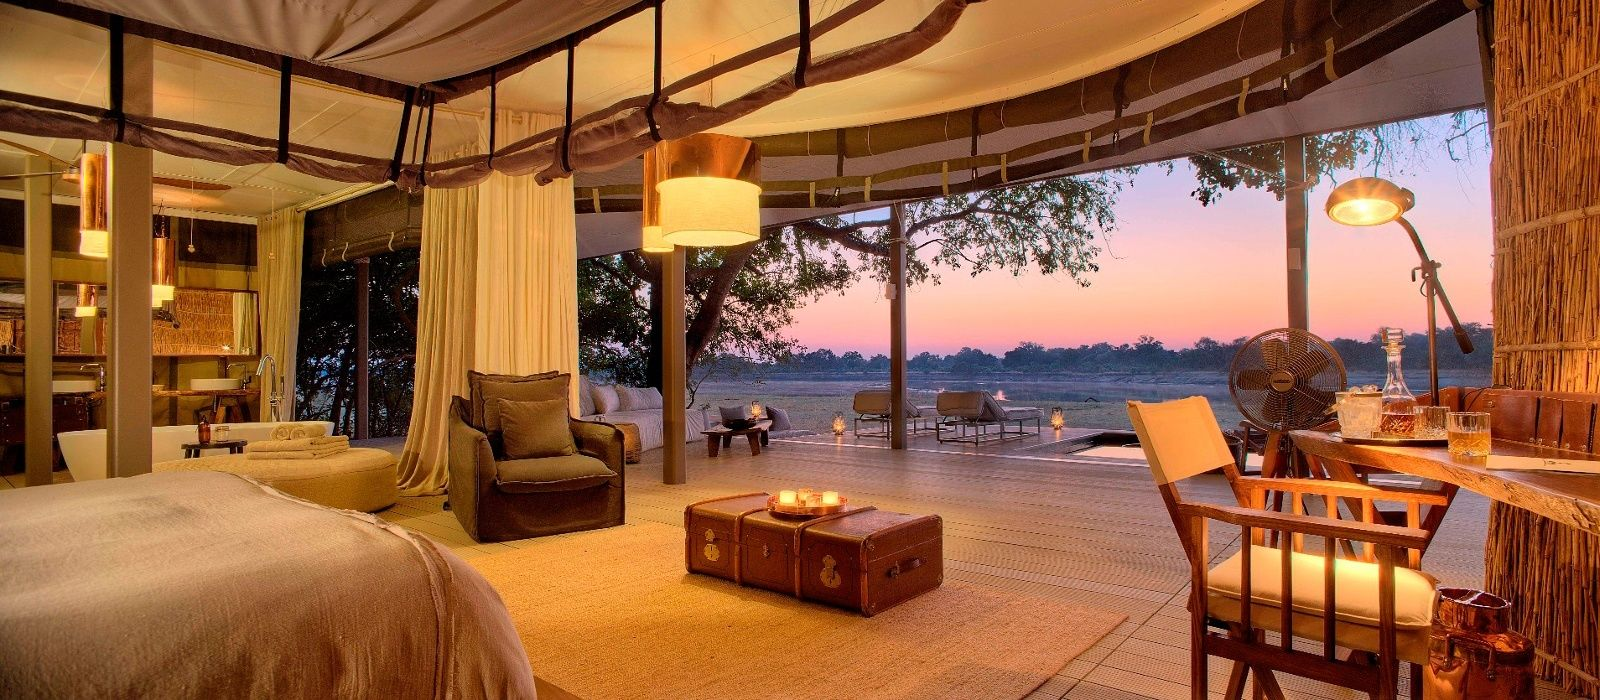 Hotel Chinzombo Lodge Zambia